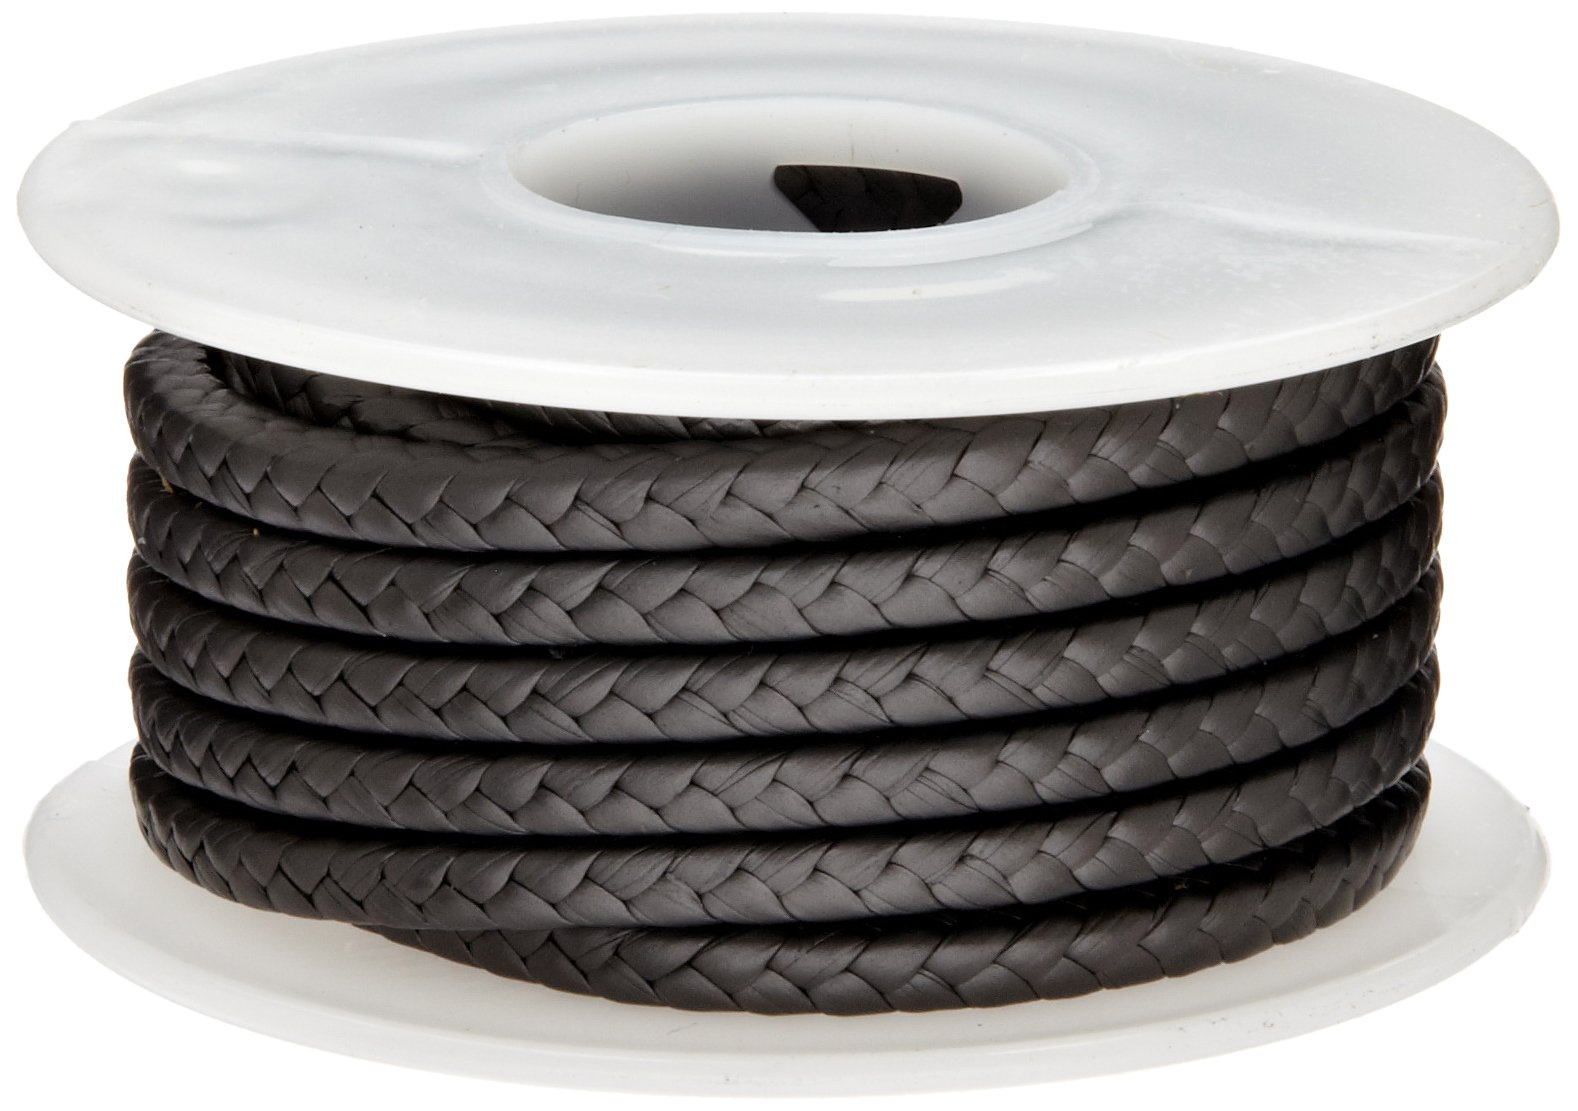 Palmetto 1382 Series Expanded PTFE with Graphite Compression Packing Seal, Dull Black, 3/16'' Square, 25' Length